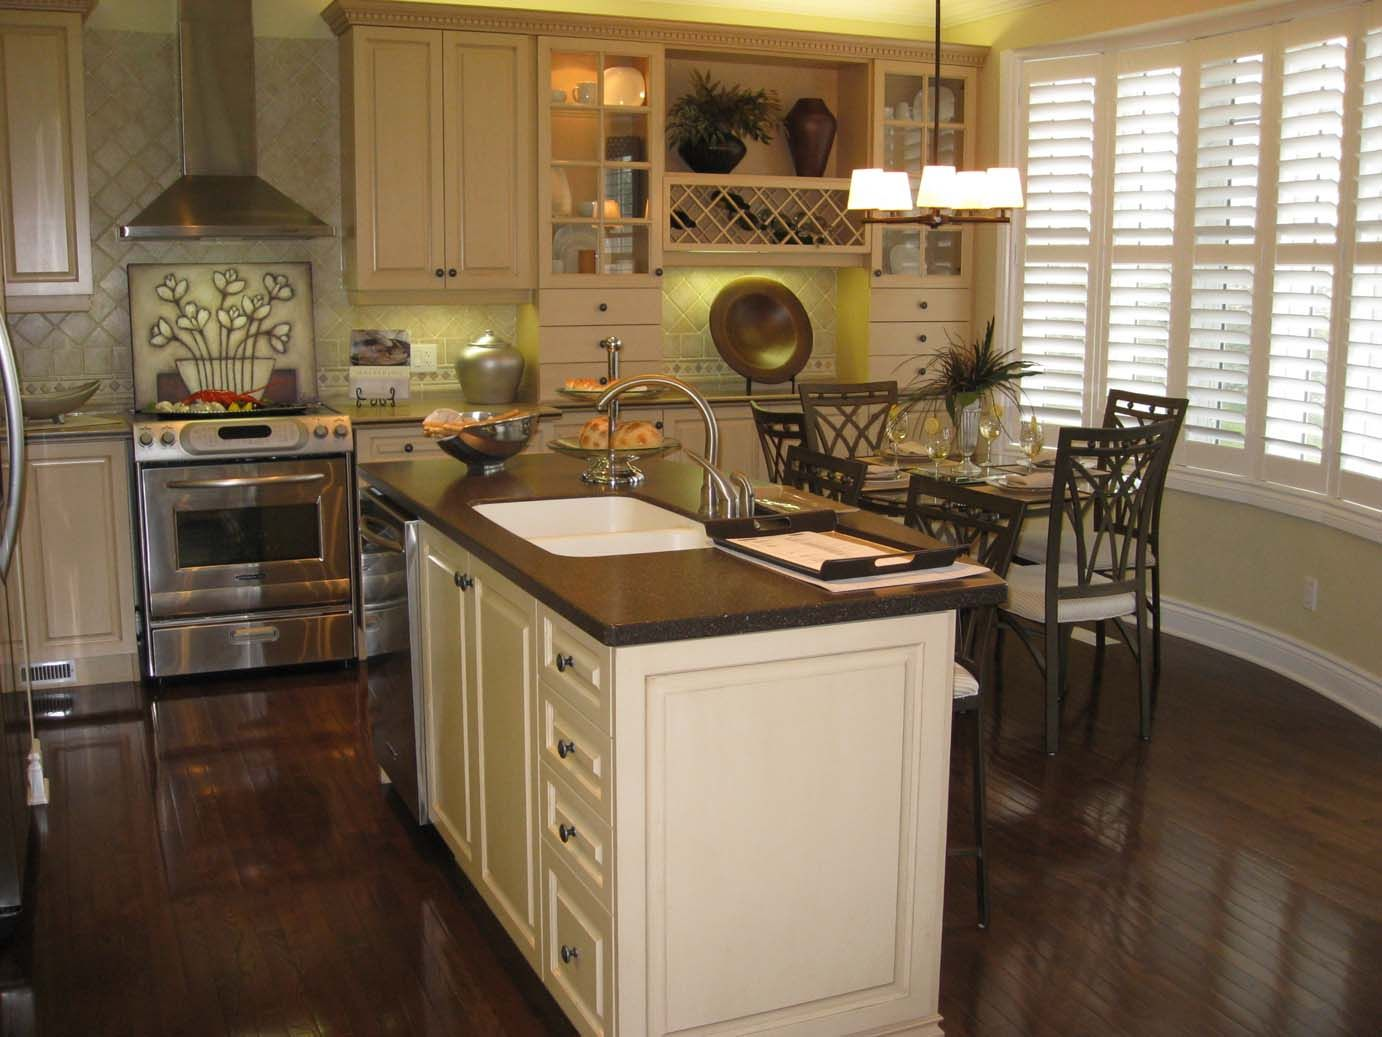 Granite Kitchen Flooring White Kitchens With Dark Floors Countertops 2 Dark Floors